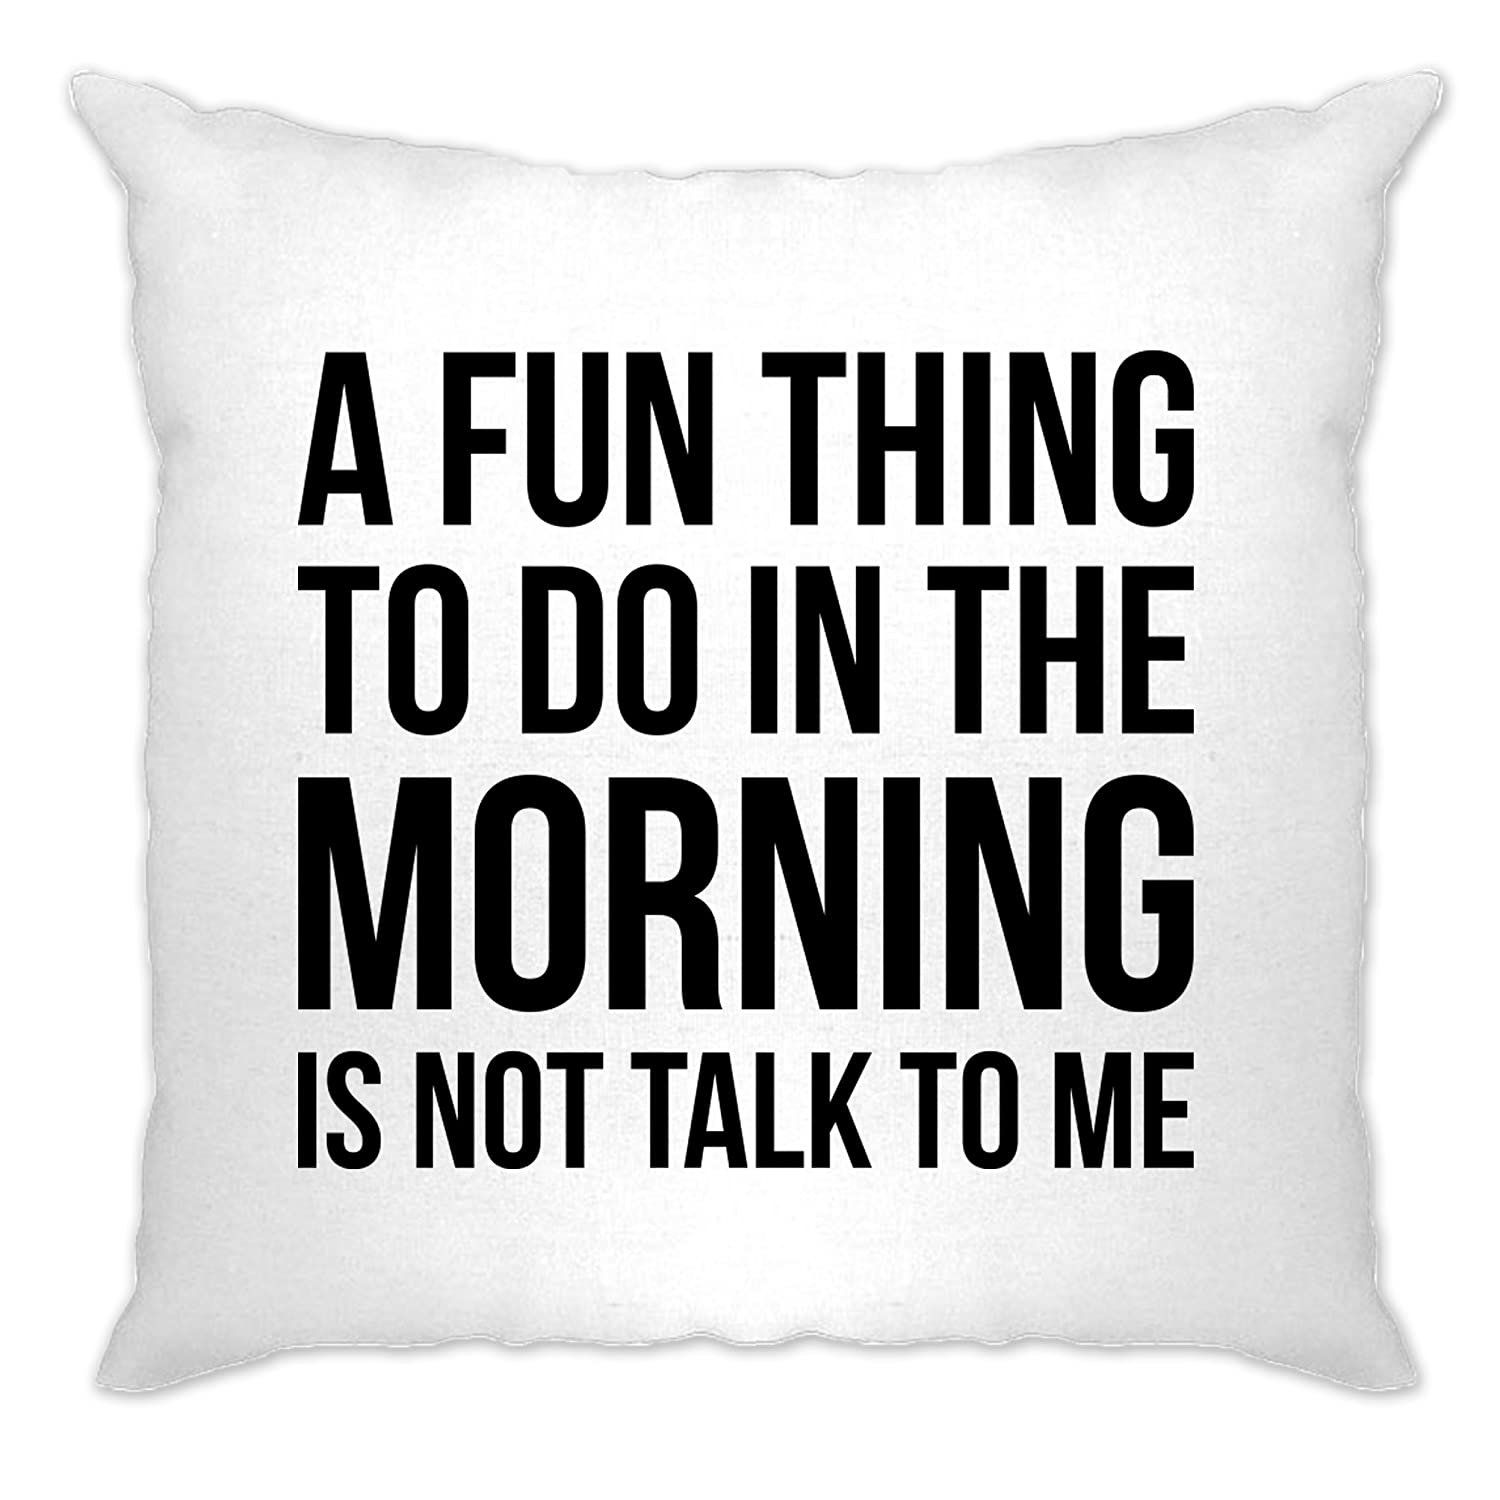 A Fun Thing To Do In The Morning Is Not Talk To Me Slogan Lazy Tired Mean Rude Hate Mornings Early Cushion Cover Sofa Home Cool Funny Gift Present A-CC-01852-NAT